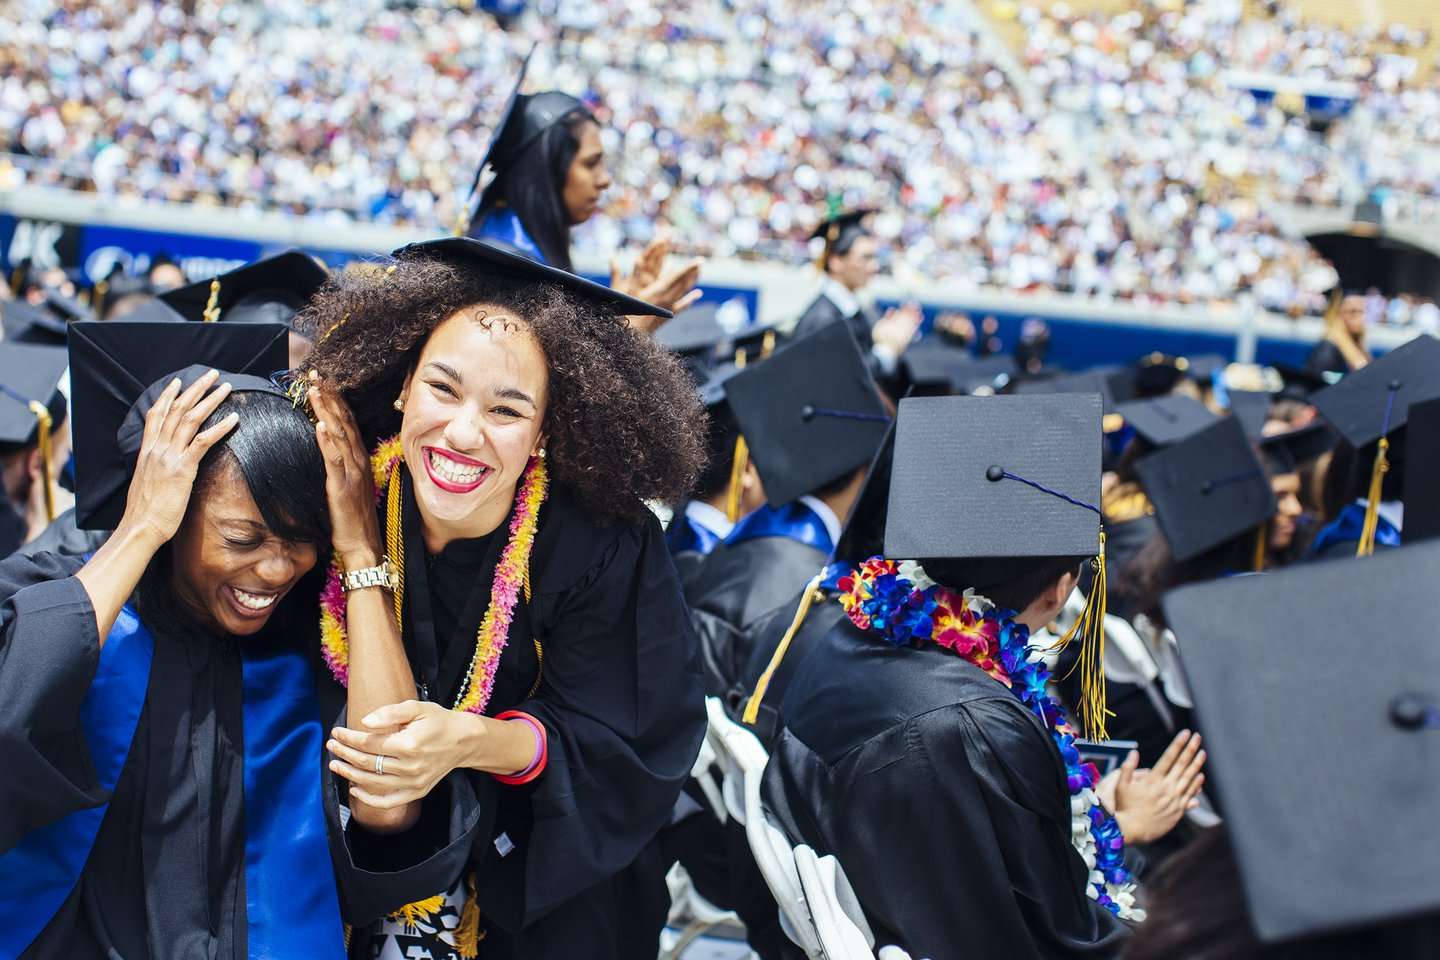 Photo of a sea full of graduating students in Memorial Stadium, two students smiling in foreground, one looks at camera